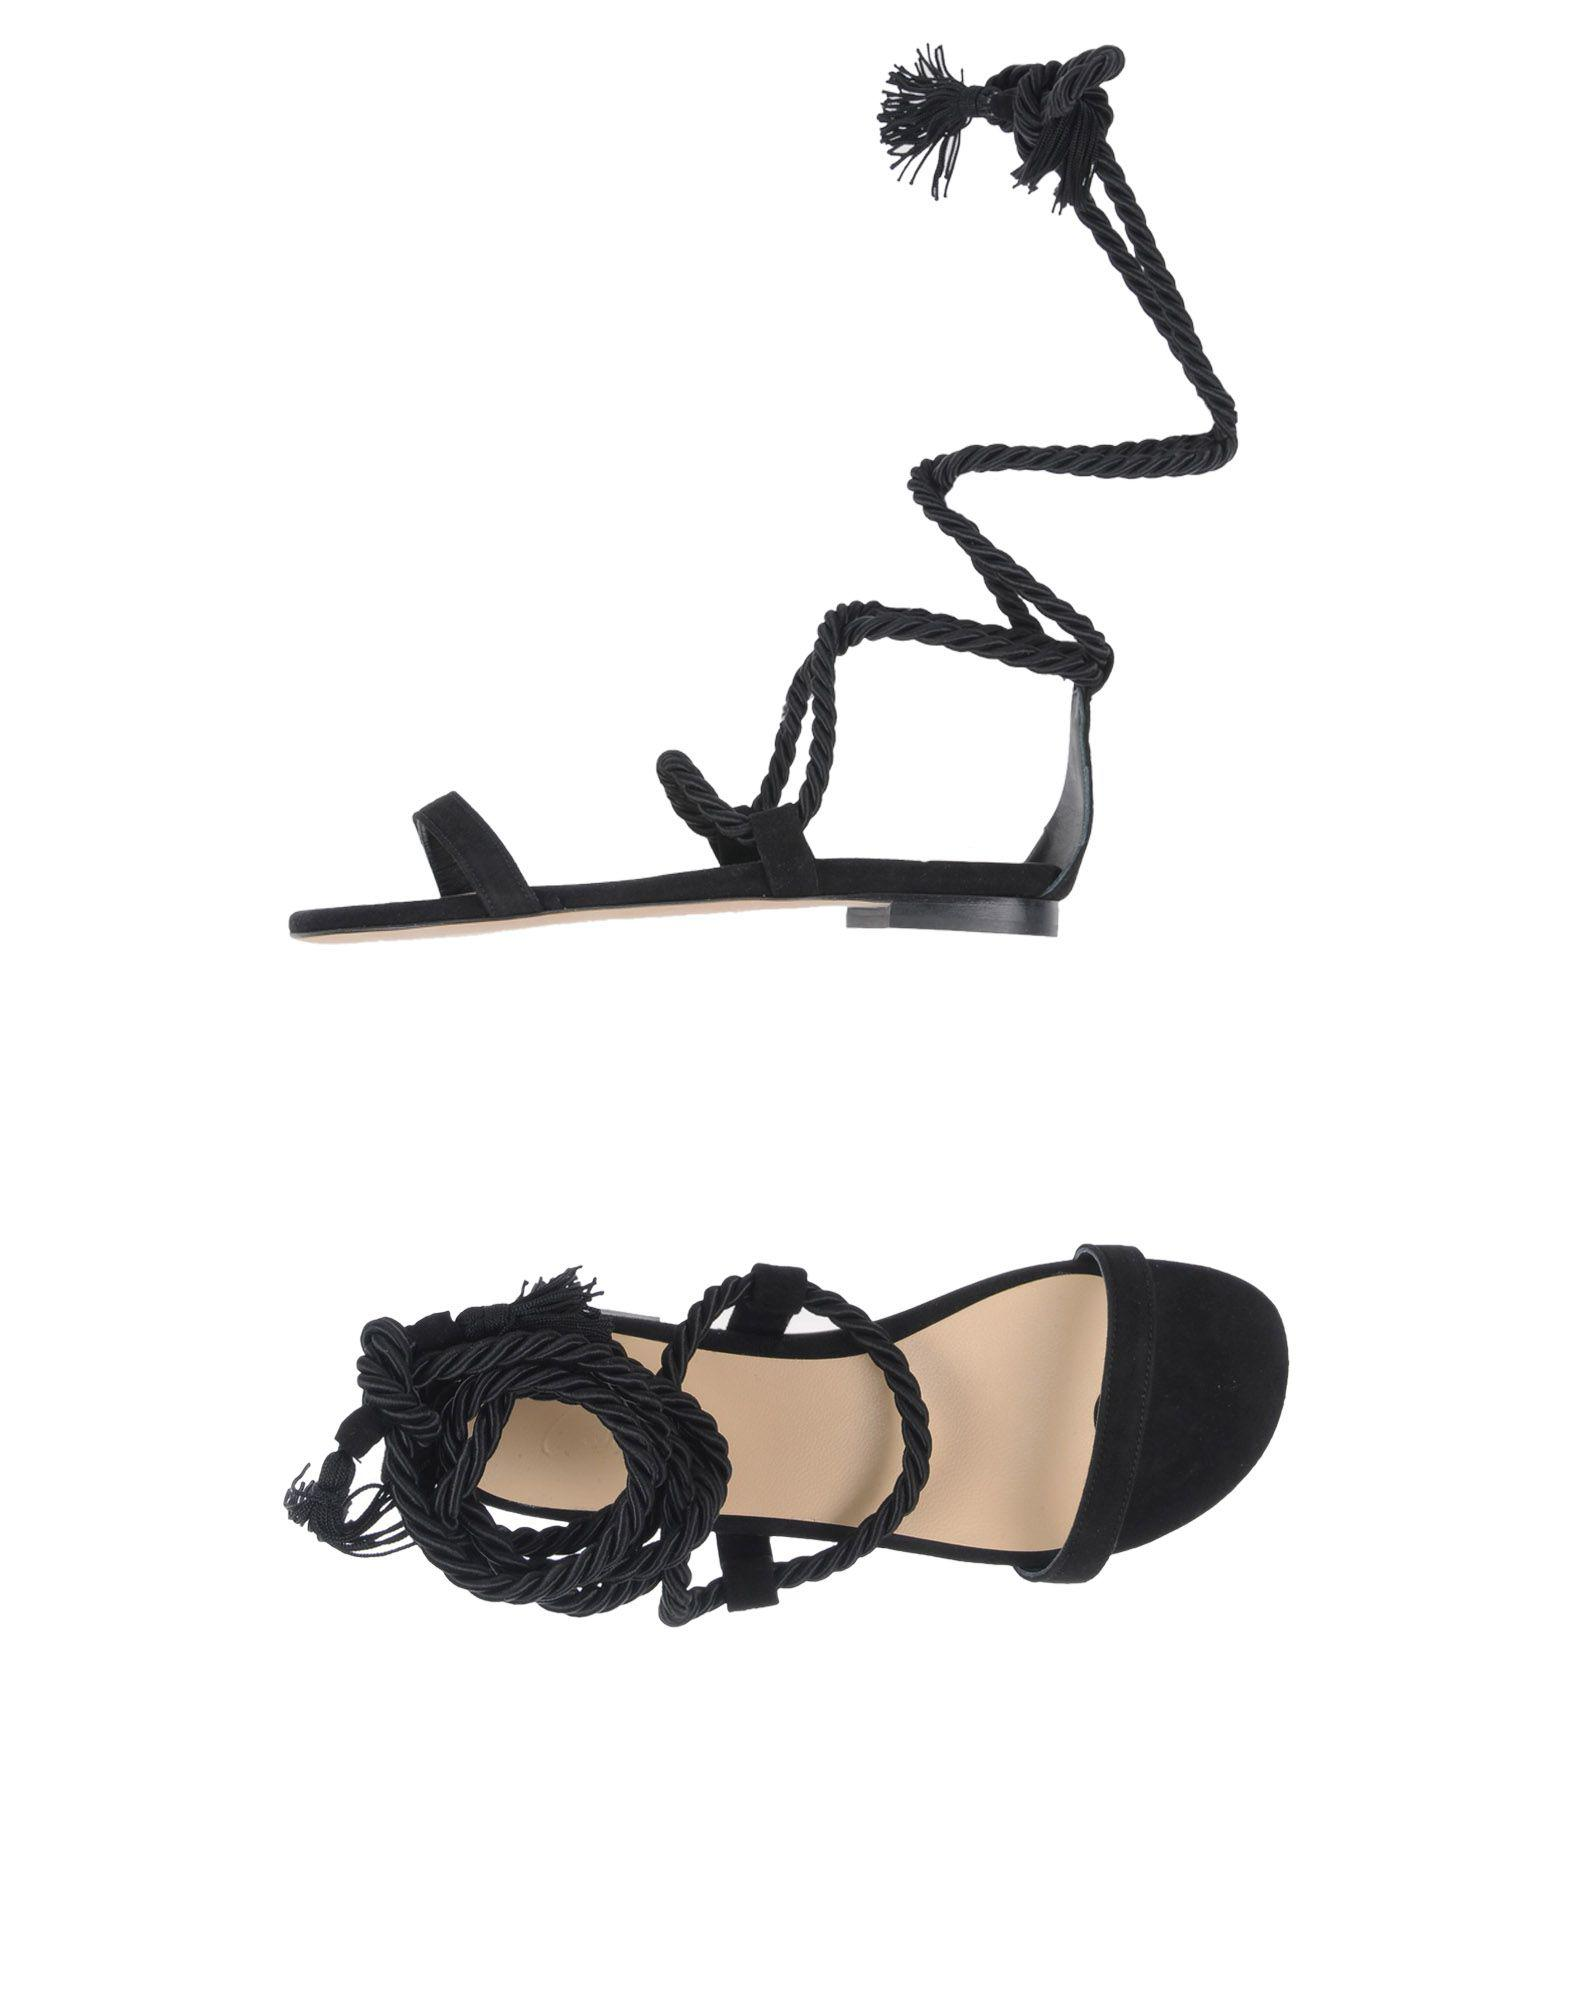 Ebay For Sale FOOTWEAR - Sandals Carla Saint Barth Outlet Get To Buy Outlet Authentic eFuDm2